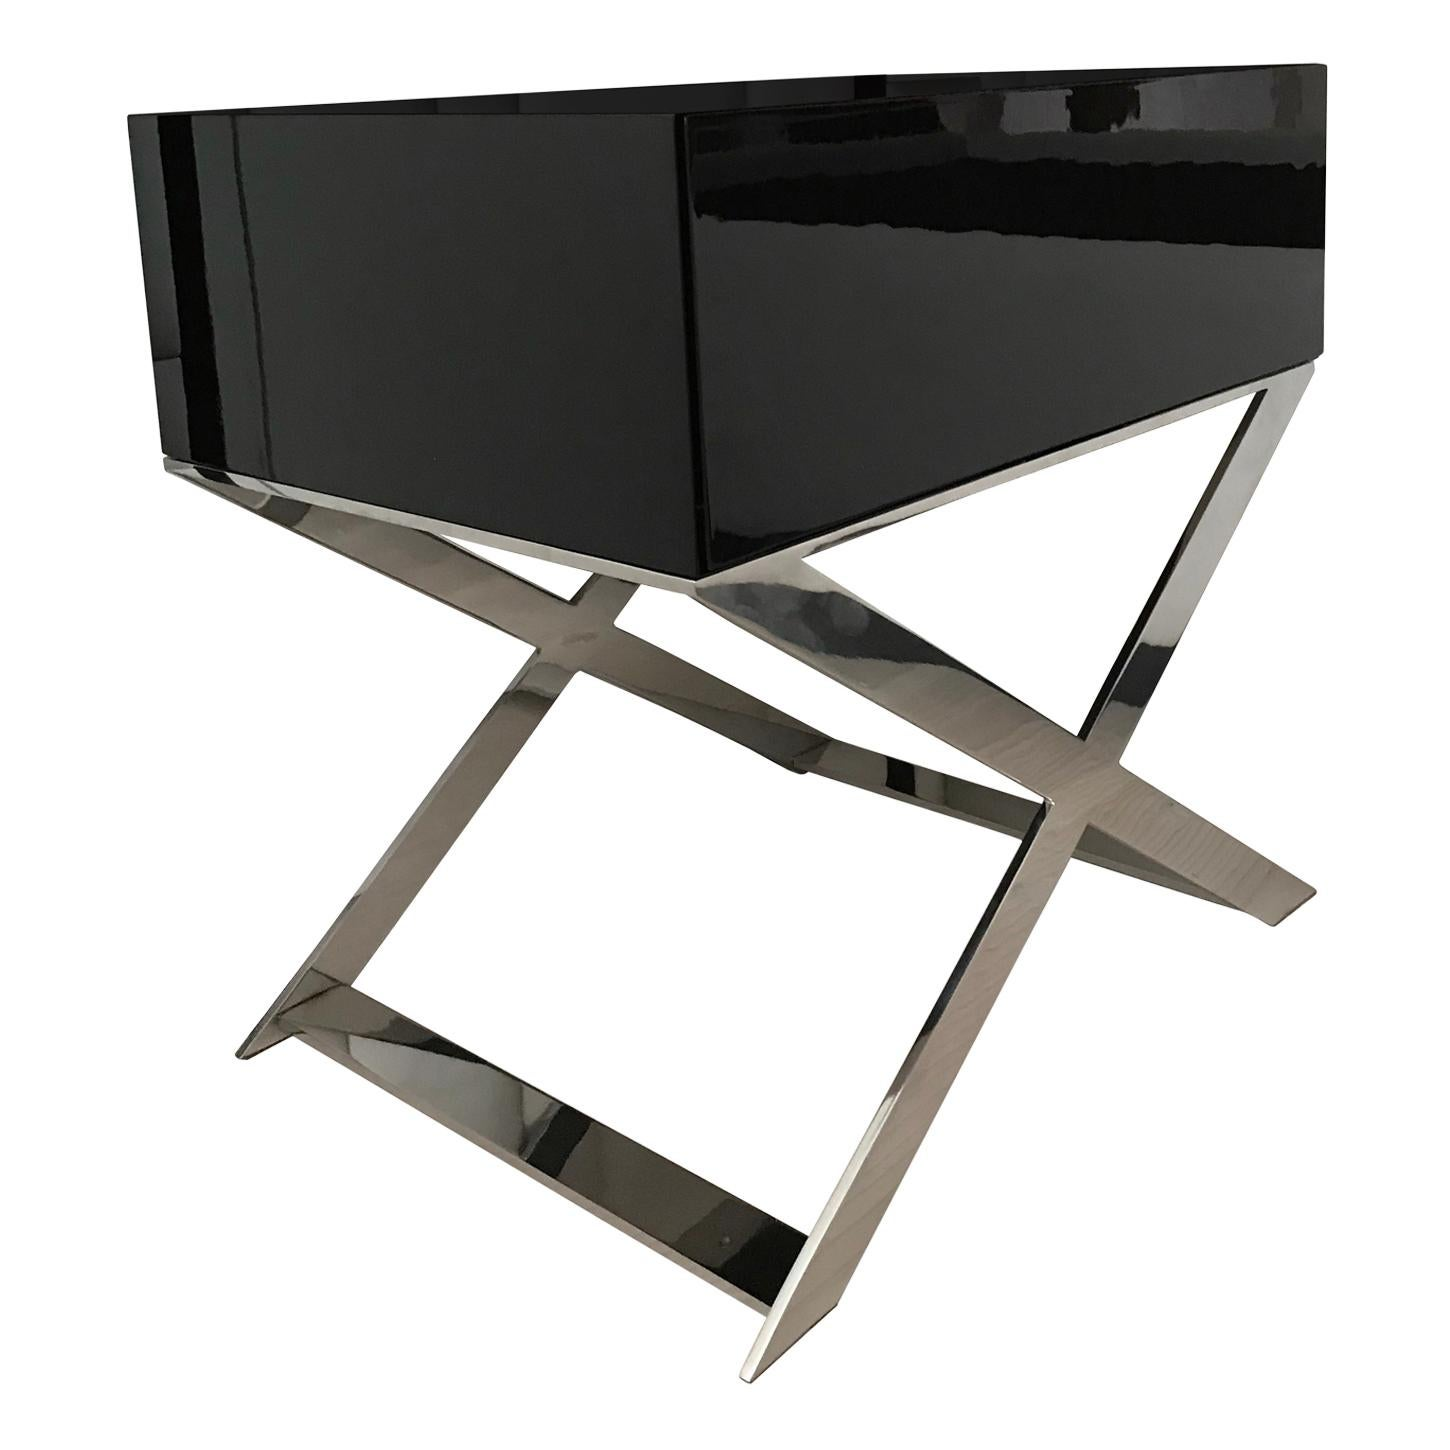 X-Leg Bedside Table in Black Lacquered and Polished Stainless Steel Legs